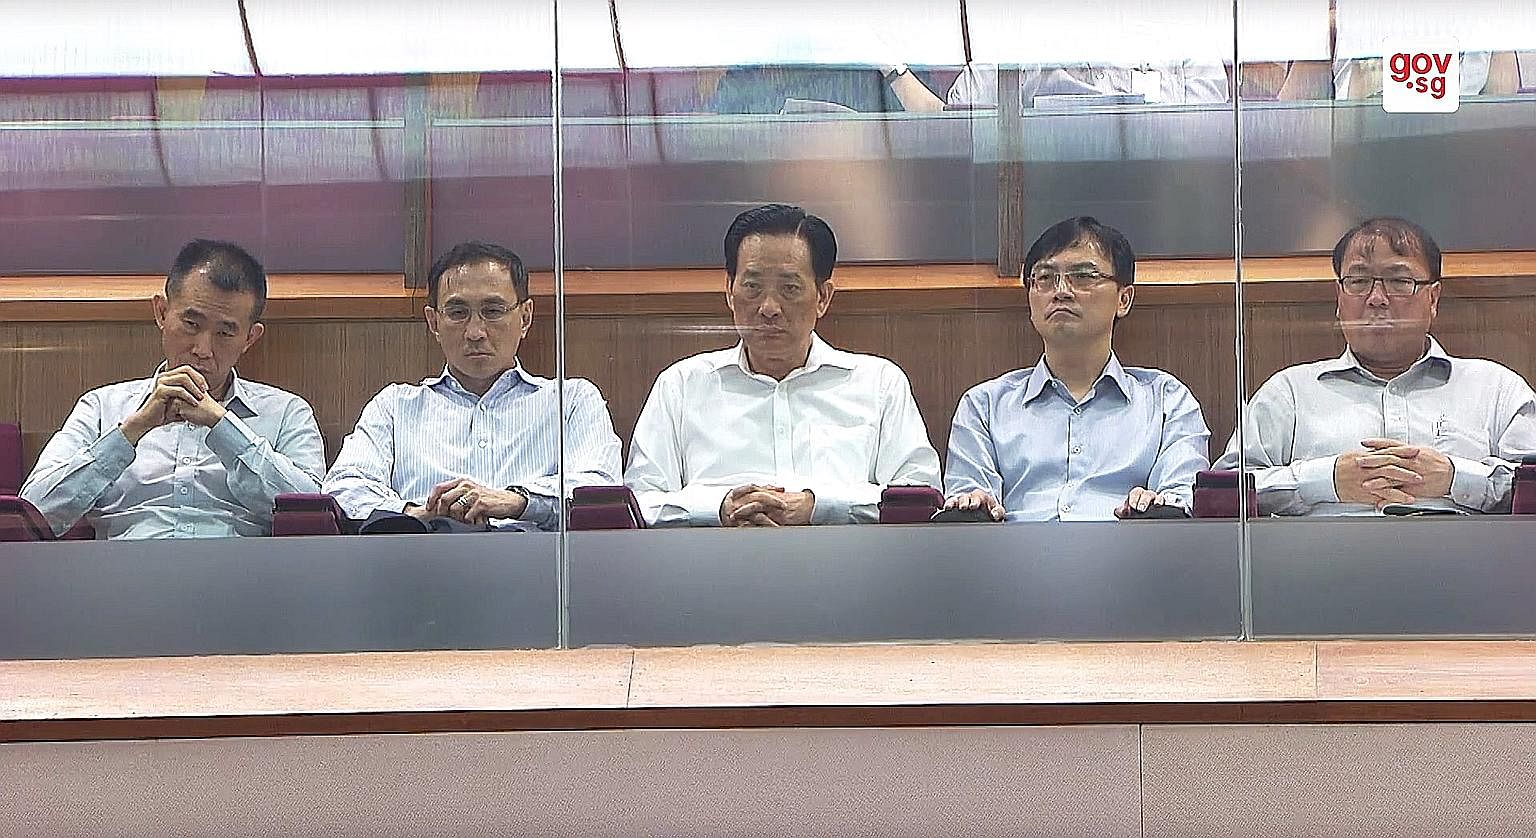 Present in Parliament yesterday were (from left) SMRT Trains chief executive Lee Ling Wee, SMRT chief executive Desmond Kuek, SMRT chairman Seah Moon Ming, LTA chief executive Ngien Hoon Ping and LTA deputy chief executive Chua Chong Kheng. Transport